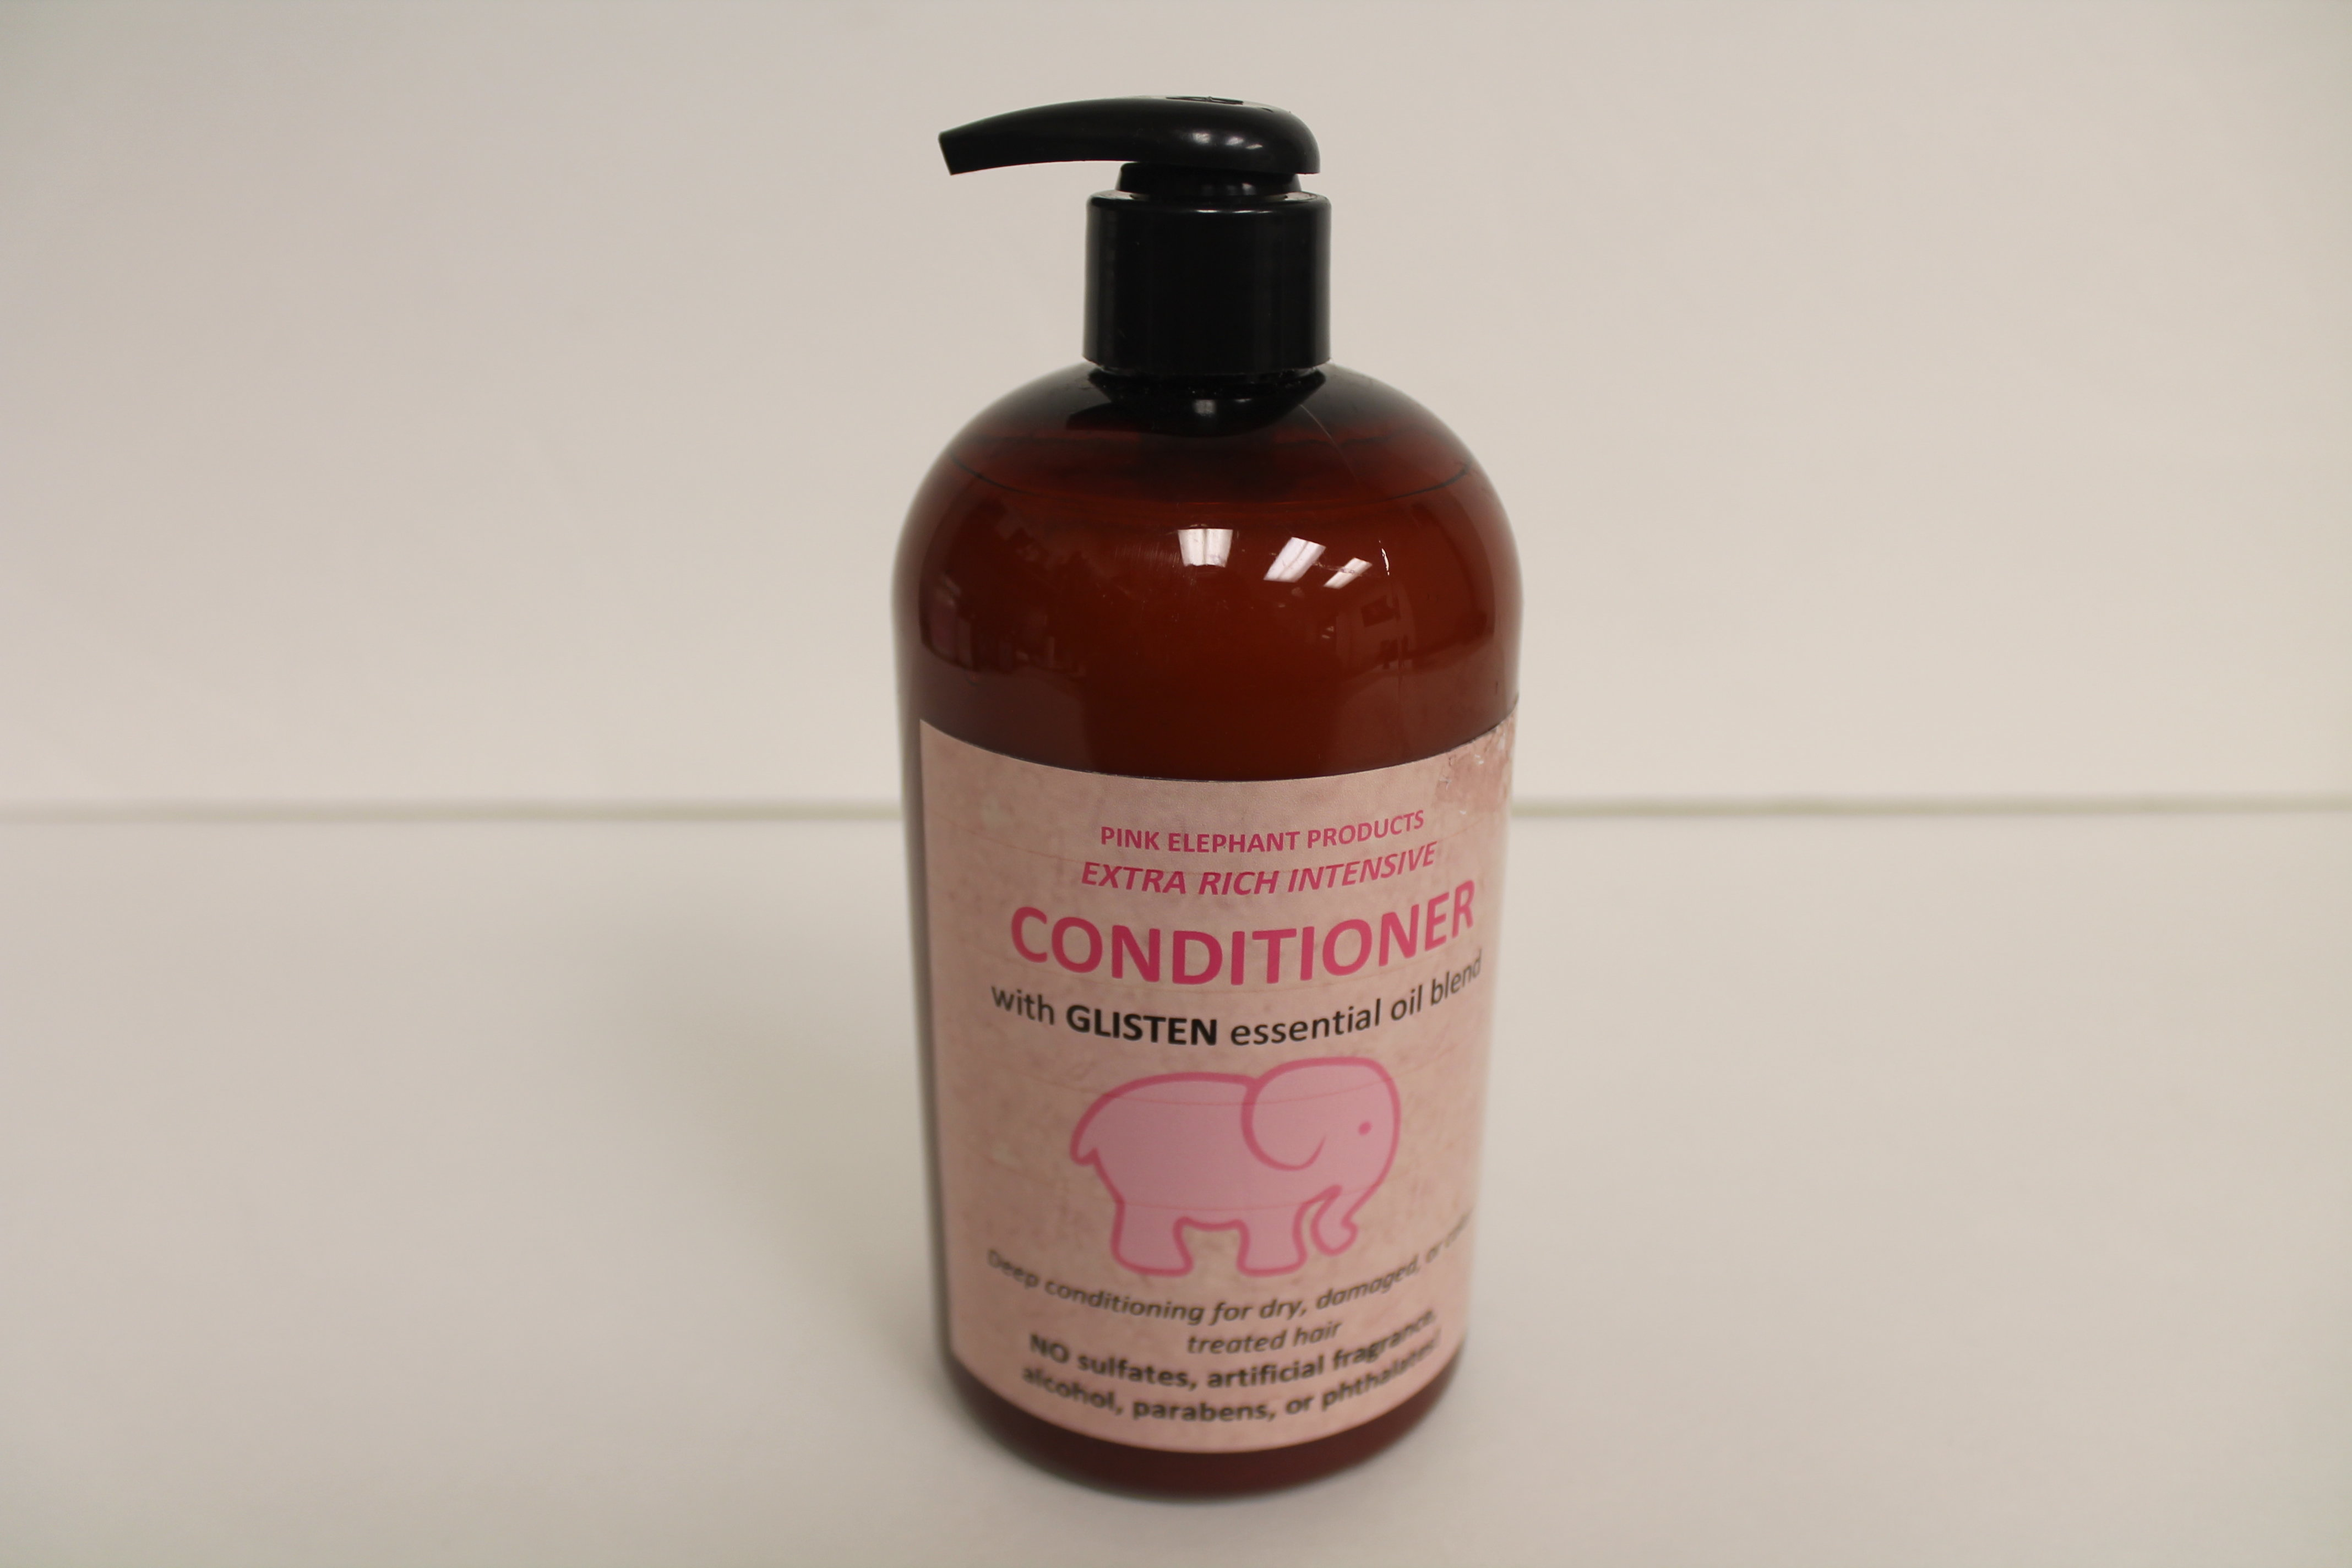 Pink Elephant Conditioner with Glisten essential oil blend 00202